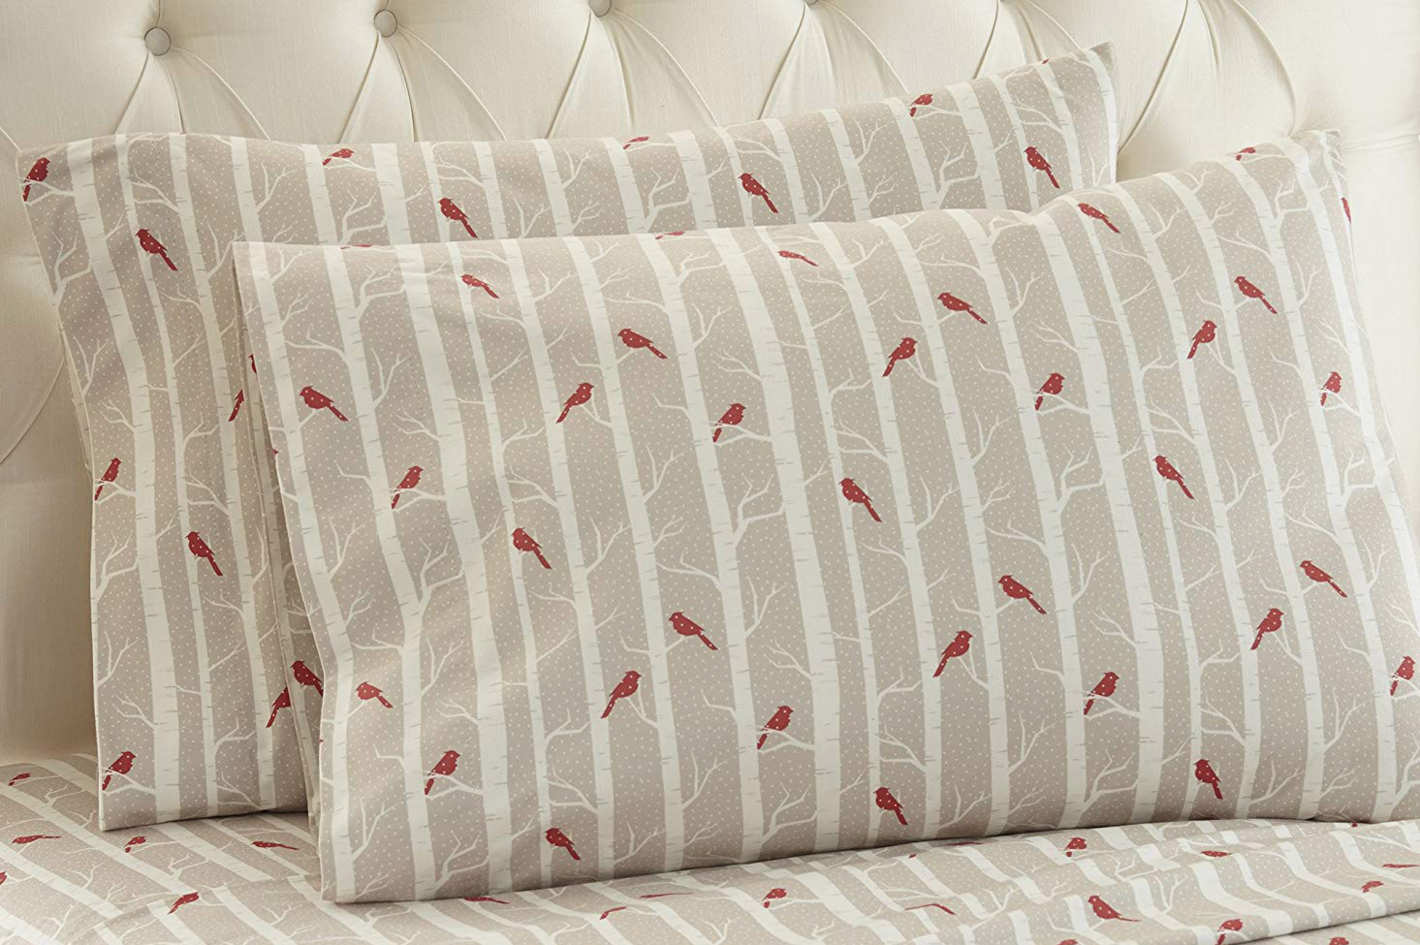 Thermee Micro Flannel Shavel Home Products Birch Sheet Set (Queen)